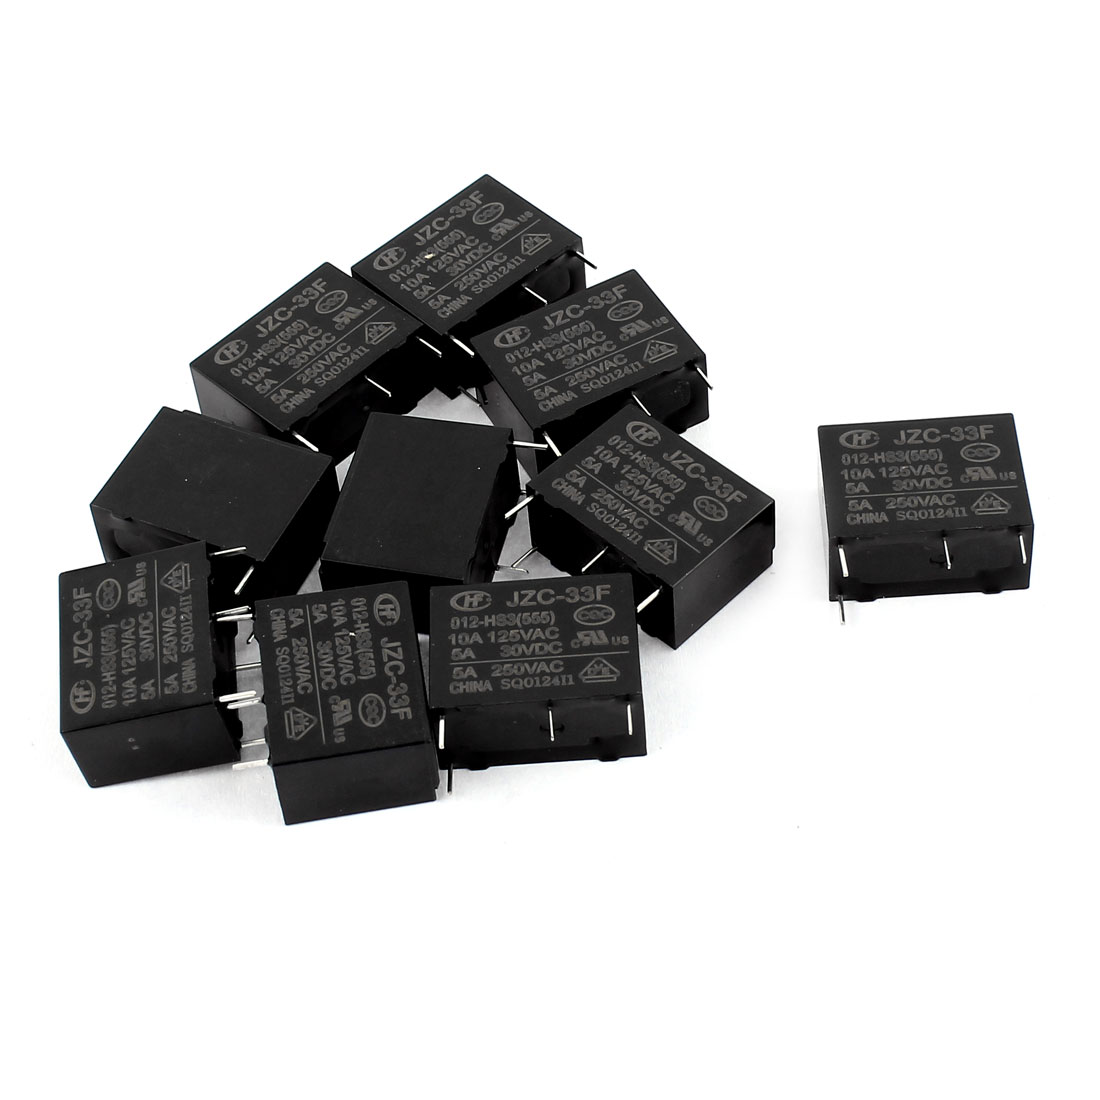 10 Pcs 30VDC 5A 125VAC 10A 4 Terminal NO SPST JZC-33F-012-HS3 Power Relay